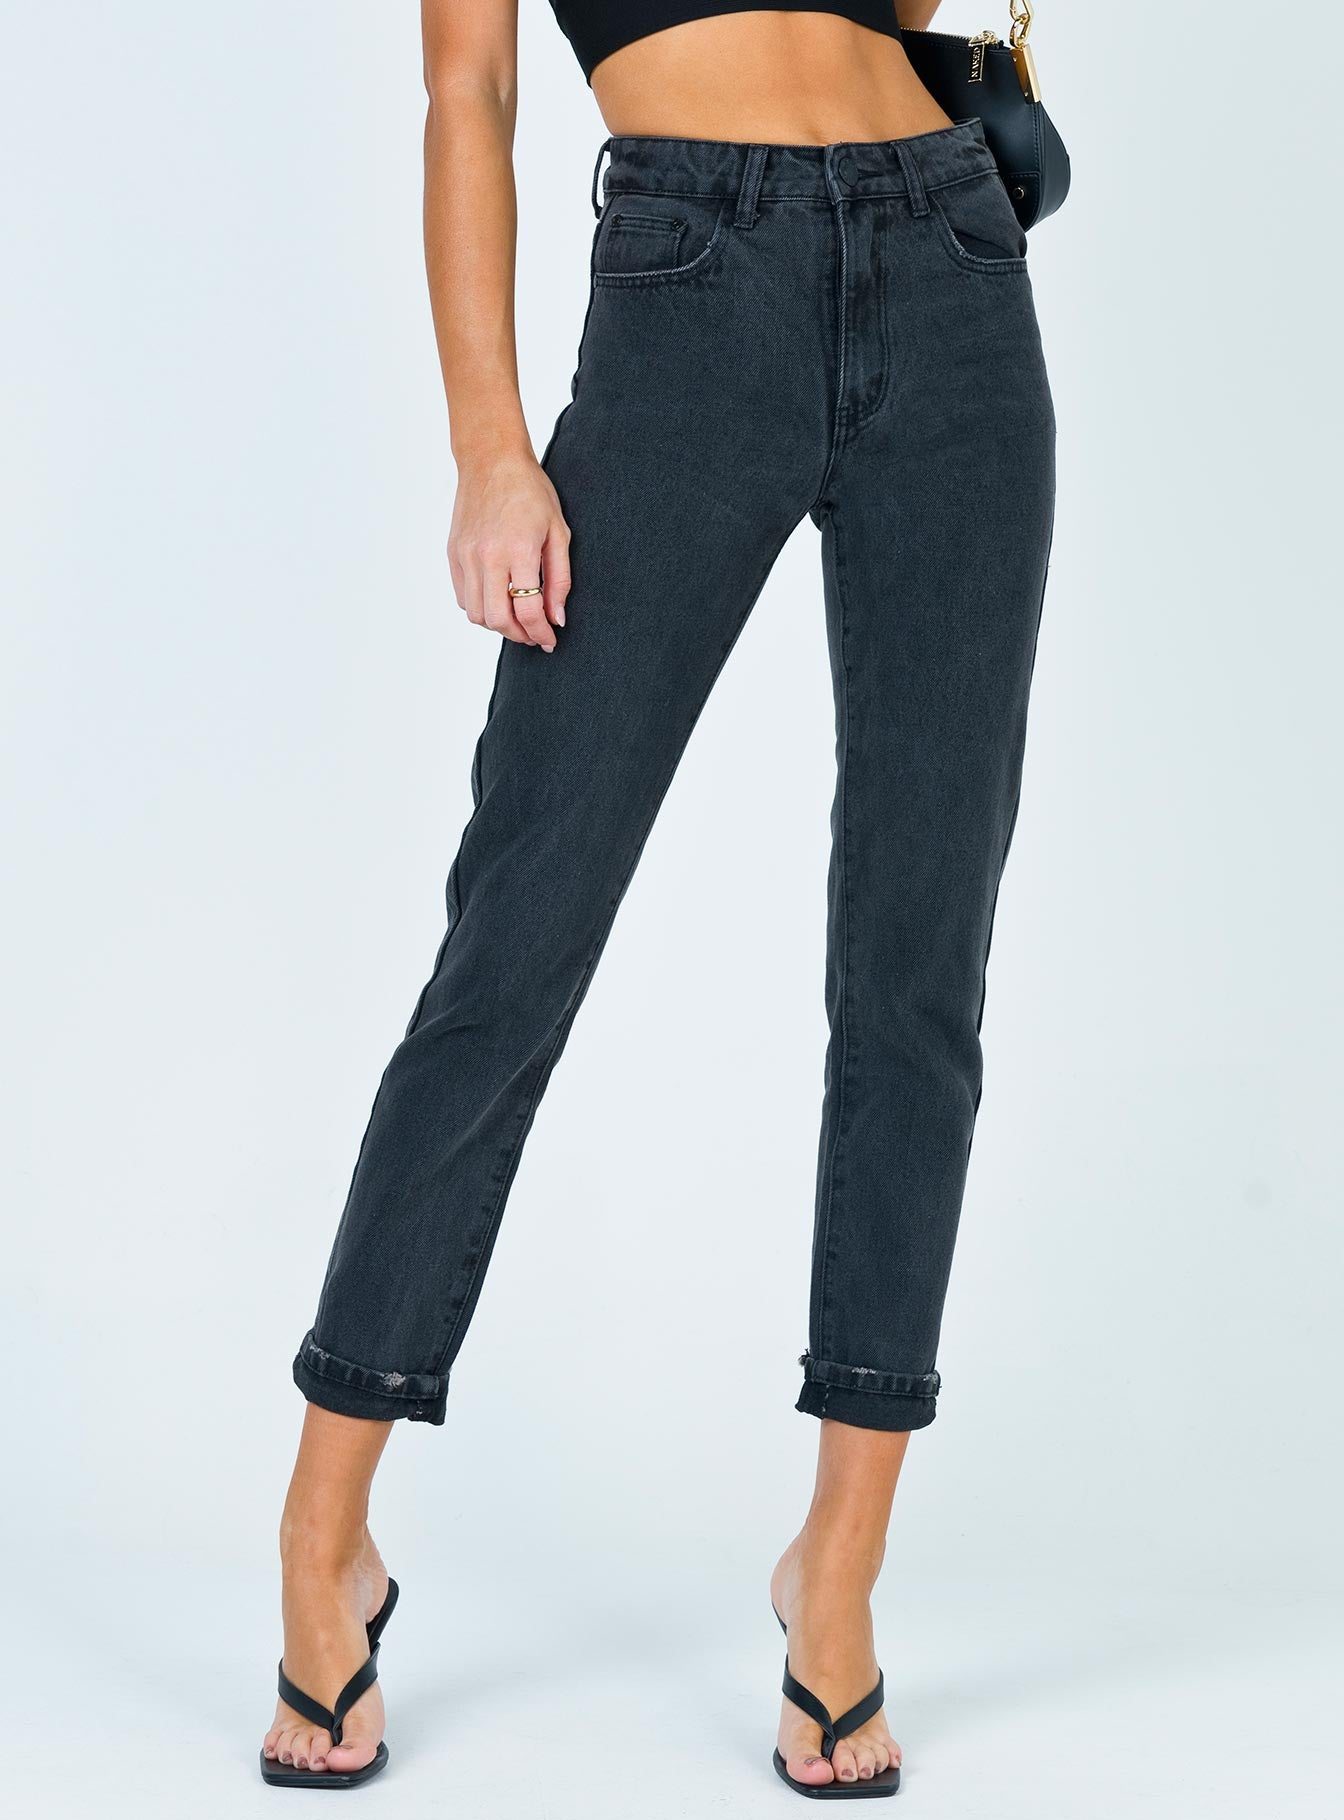 Secondcity Skinny Jeans Black Denim